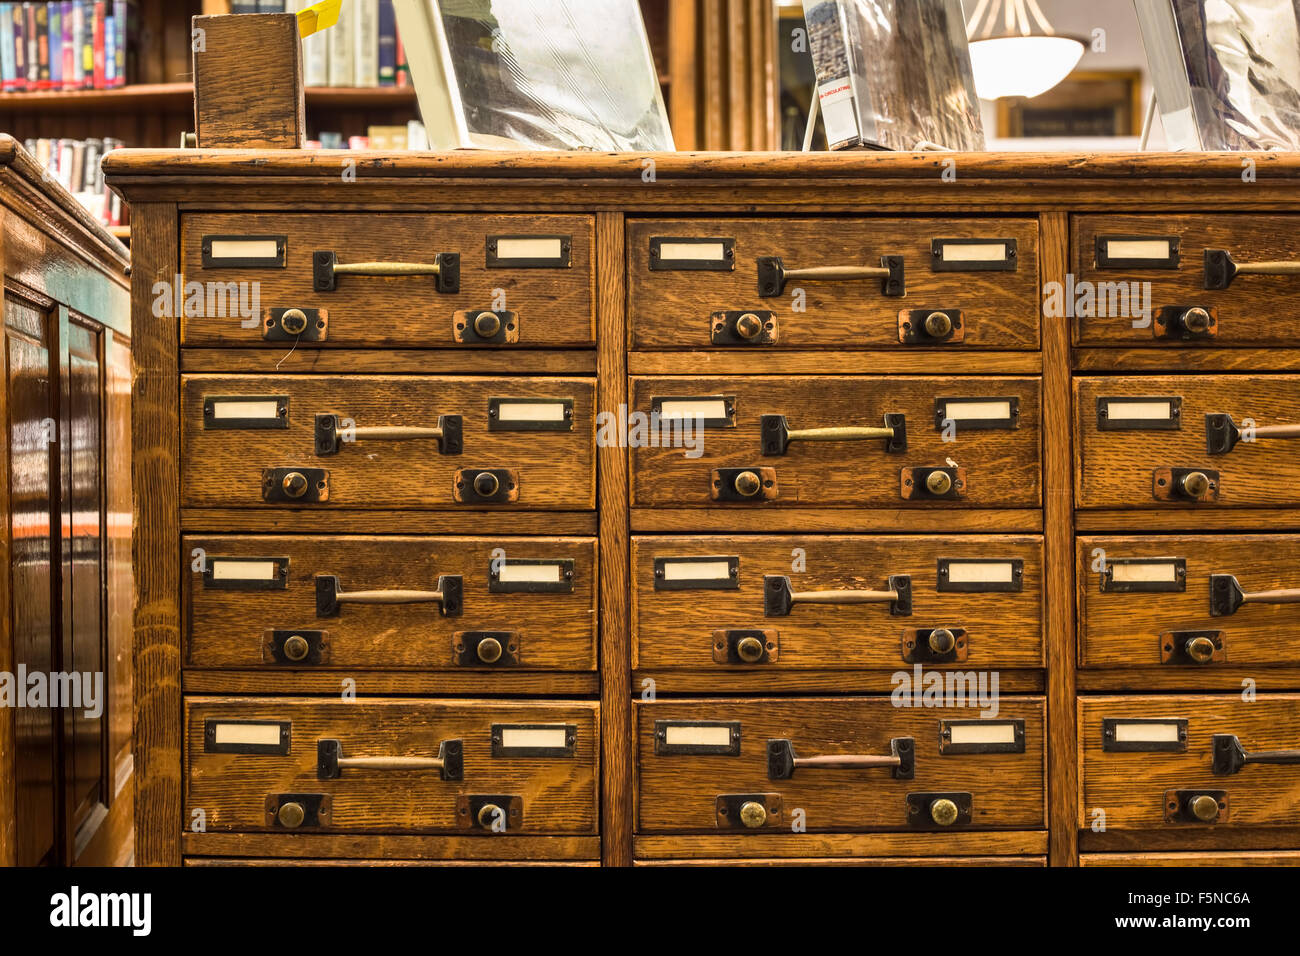 Vintage Wood Library Card Catalog   Stock Image